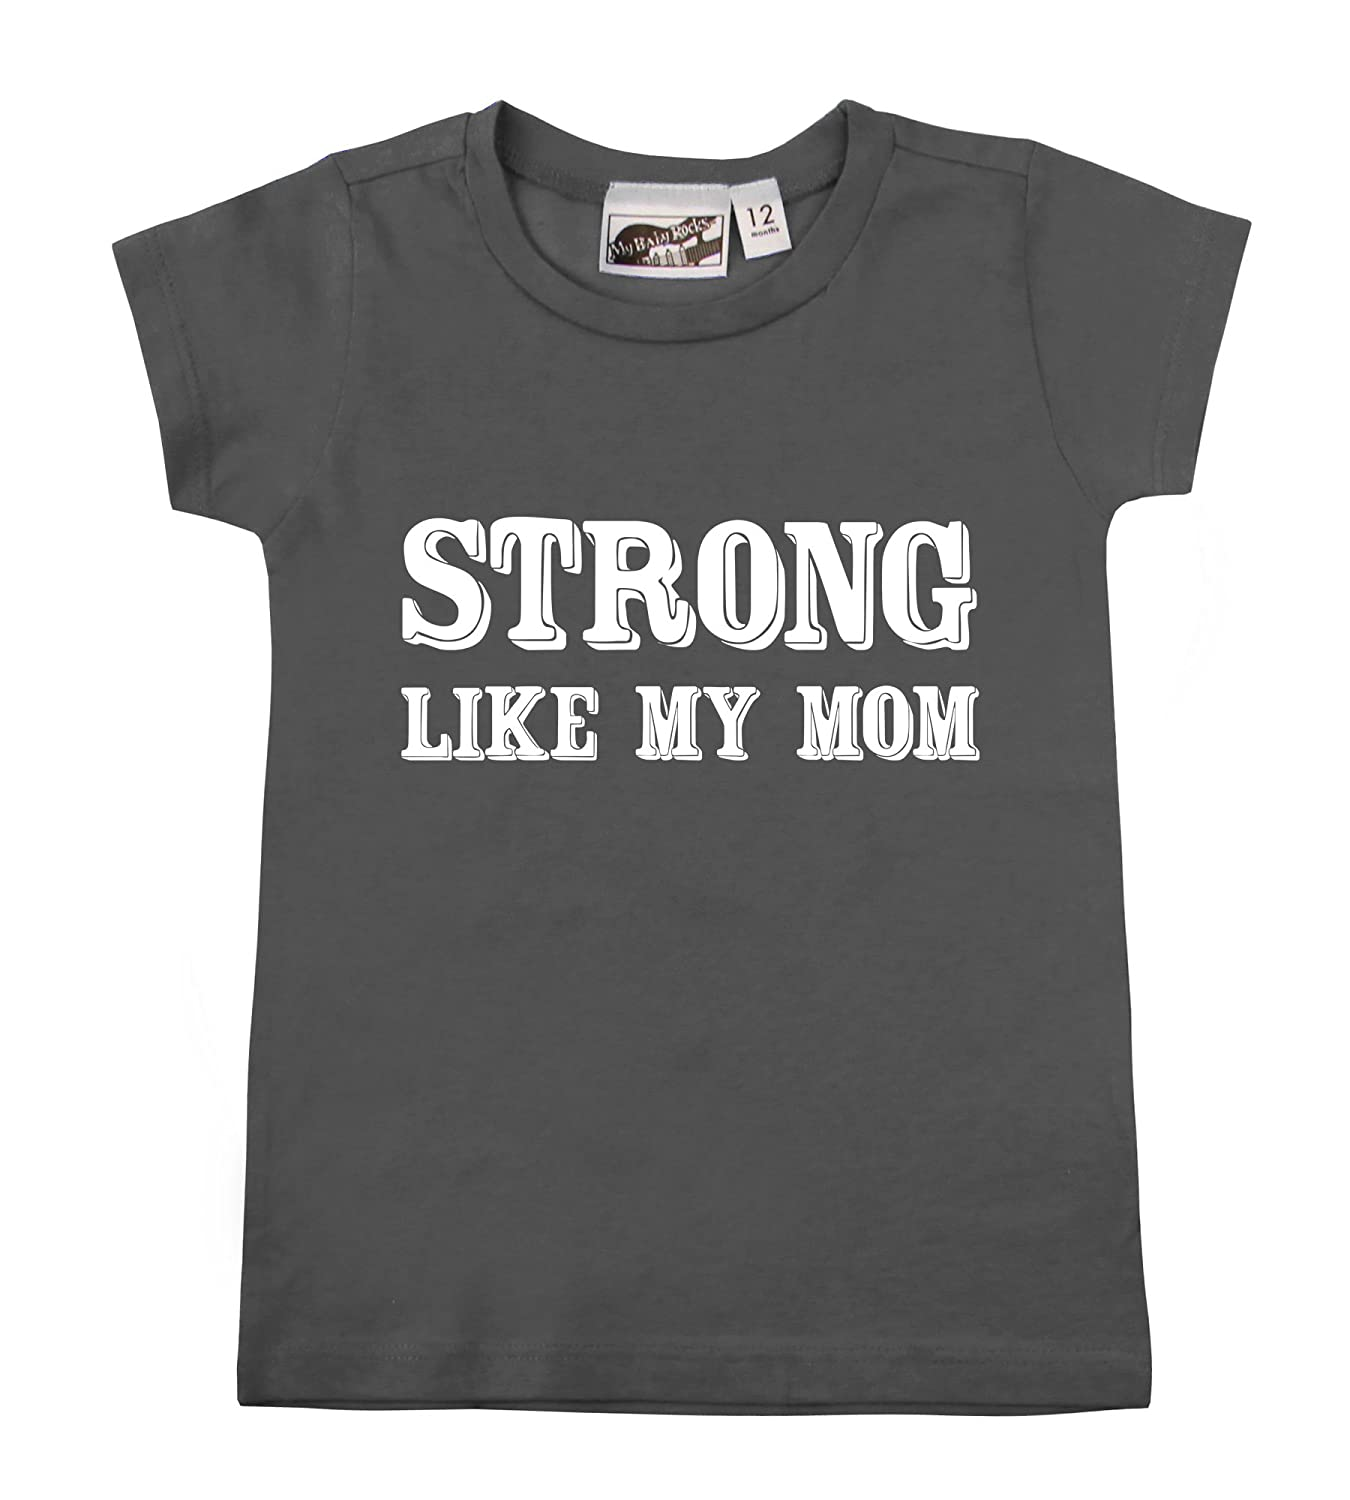 Strong Like My Mom Charcoal Gray Baby Toddler T-Shirt